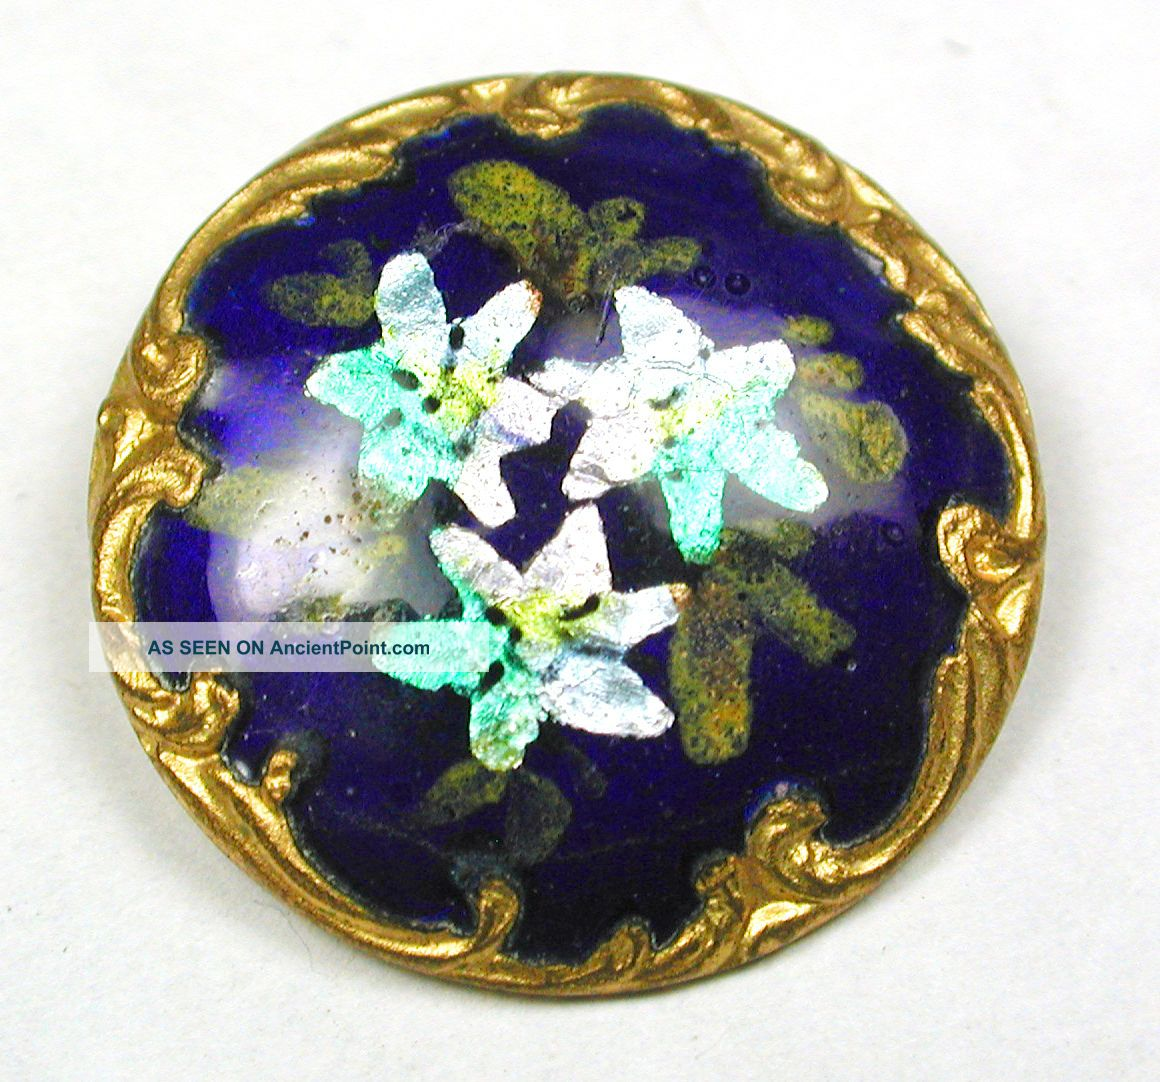 Antique Enamel Button Cobalt W/ Flower On Foil W/ Fancy Brass Border 13/16